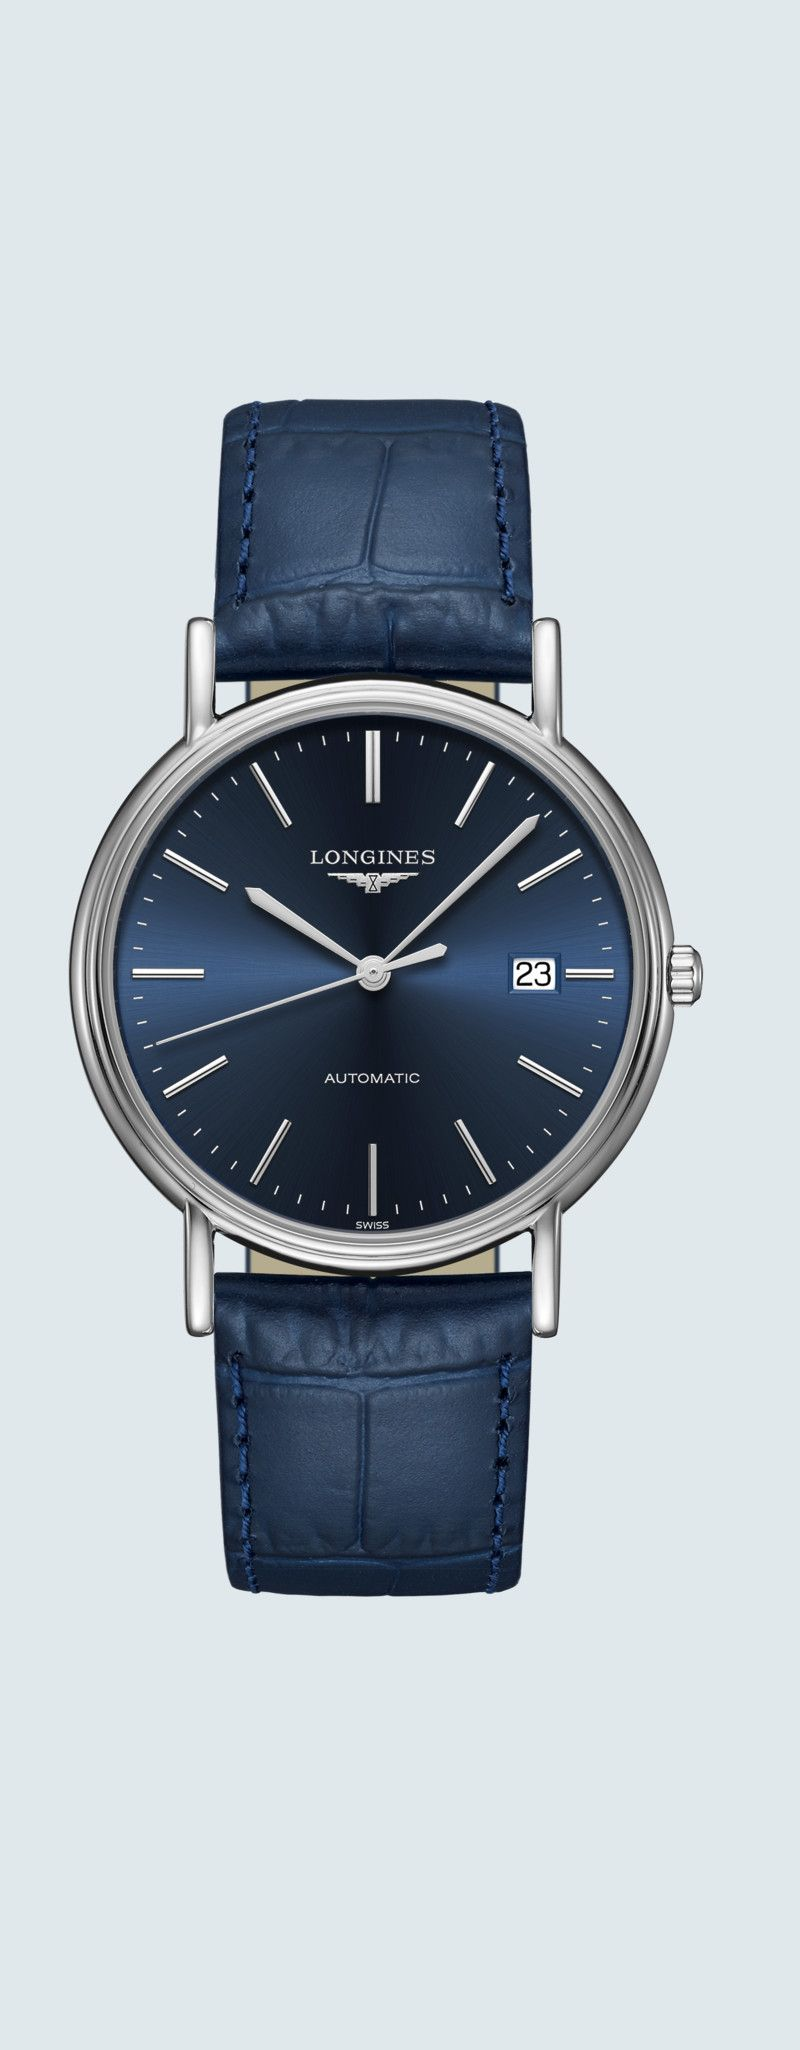 38.50 mm Acier case with Bleu soleillé dial and Bracelet cuir Bleu strap - case zoom view